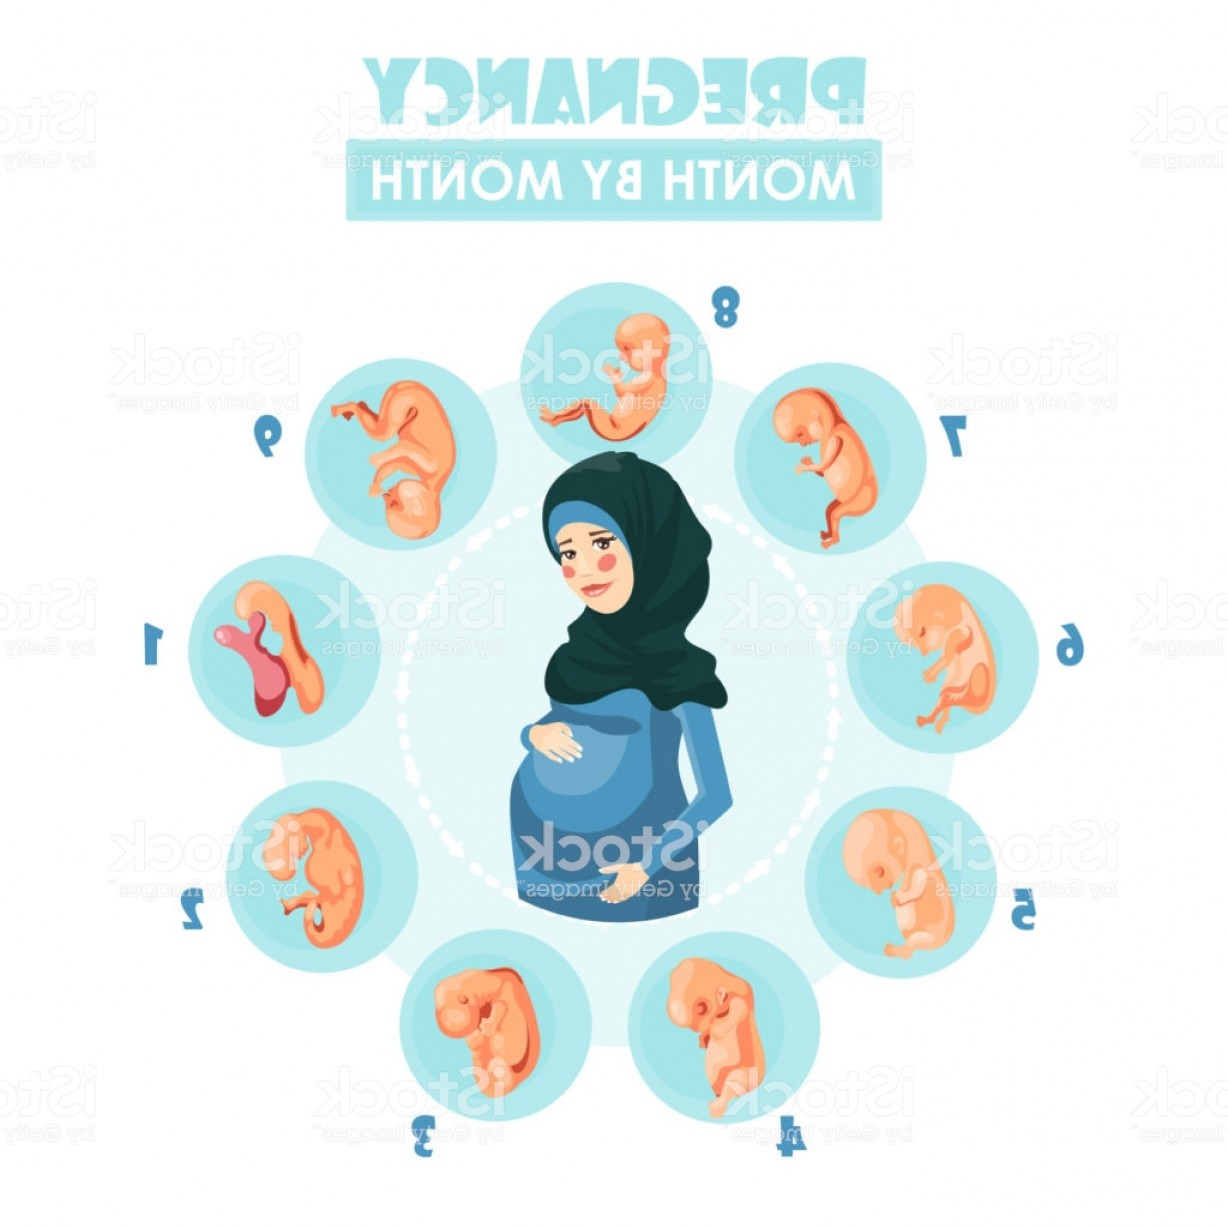 Pregnant Vector Art: Muslim Pregnant Woman Vector Colorful Illustration With Pregnancy Concept Gm